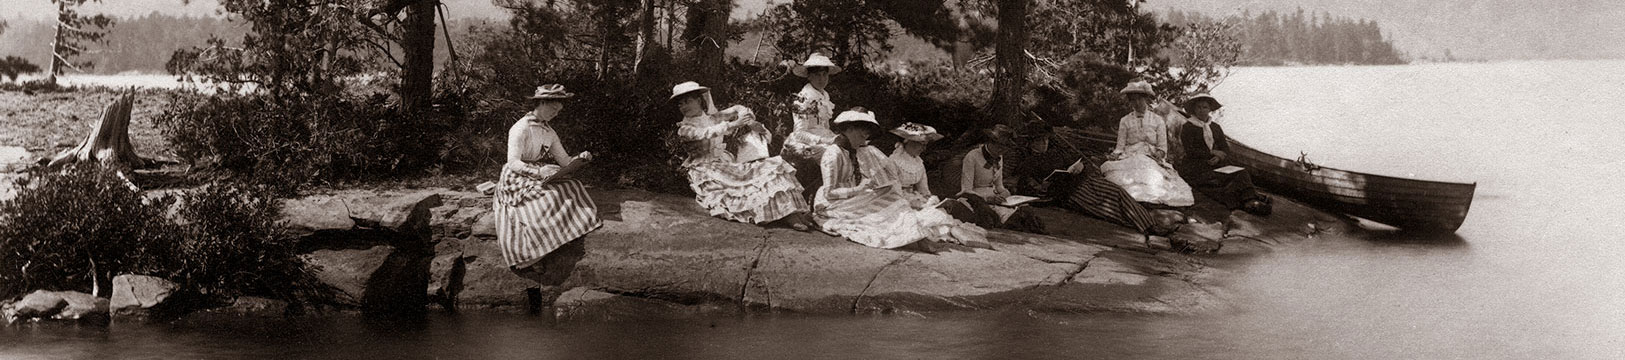 Women in hats on the shores of a lake in the Adirondacks